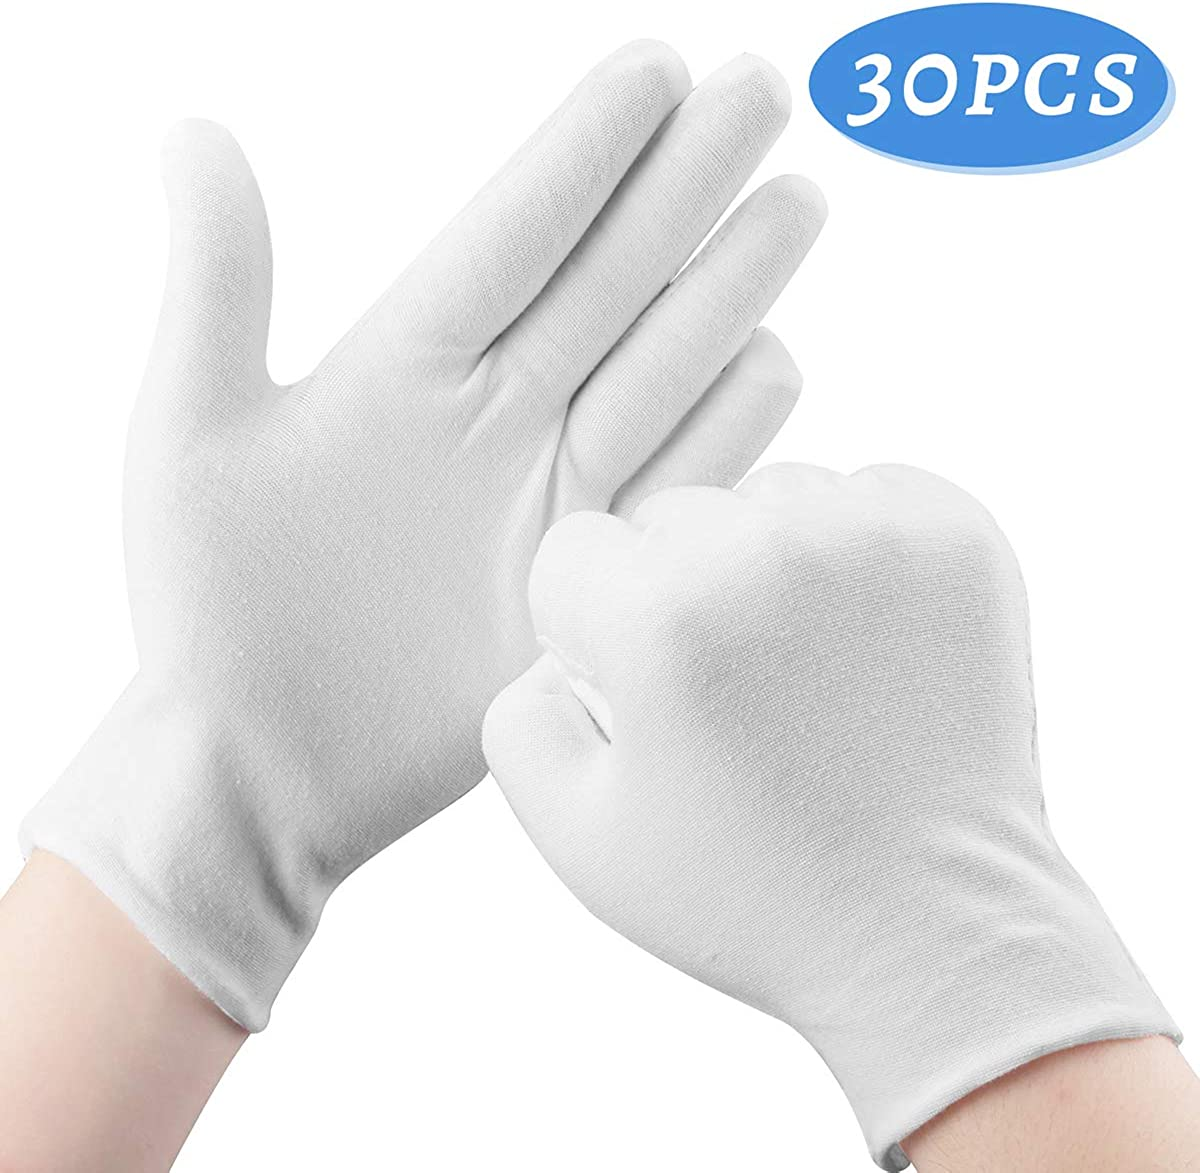 OKAM Cotton Gloves, 30 Pcs White Cotton Gloves for Dry Hands Moisturizing Eczema, Washable Shrink Resistant Cotton Gloves for Men and Women, Stretchable Cloth Gloves for Coin Jewelry Silver Inspection, 8.5''/21.5cm